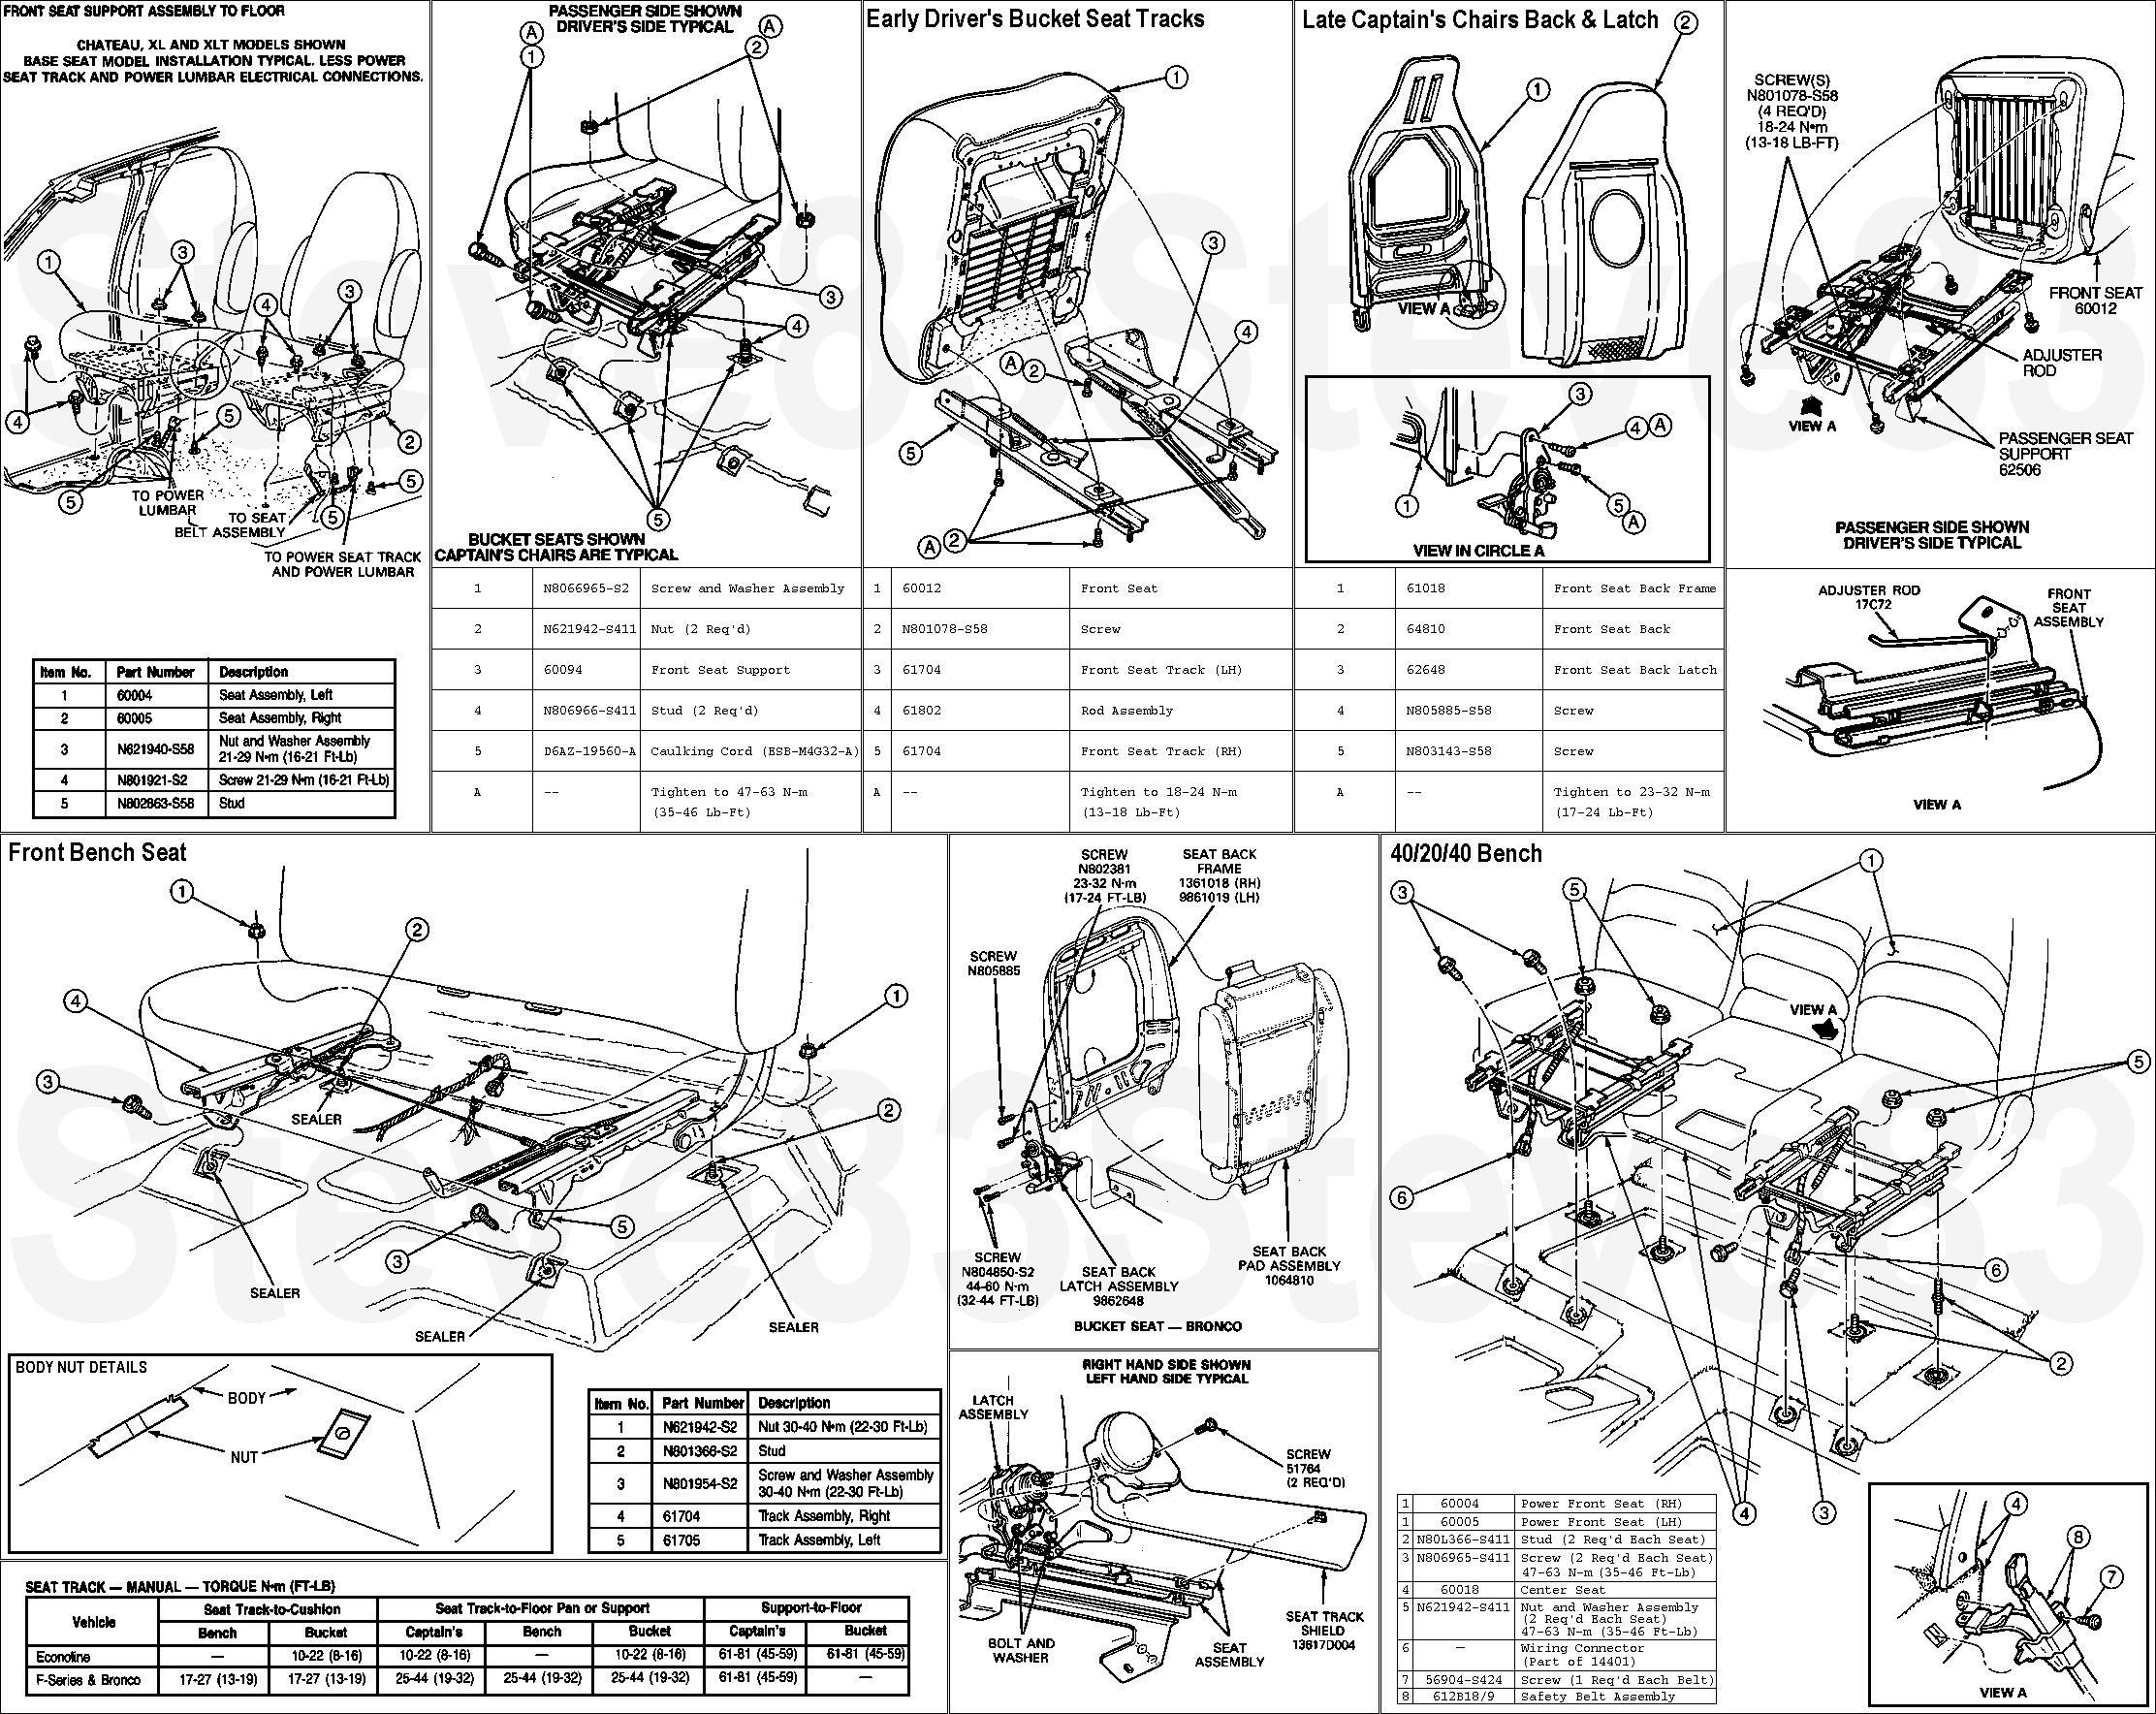 1996 ford f 150 stereo wiring diagram 1996 ford bronco radio wiring wire management   wiring diagram  1996 ford bronco radio wiring wire